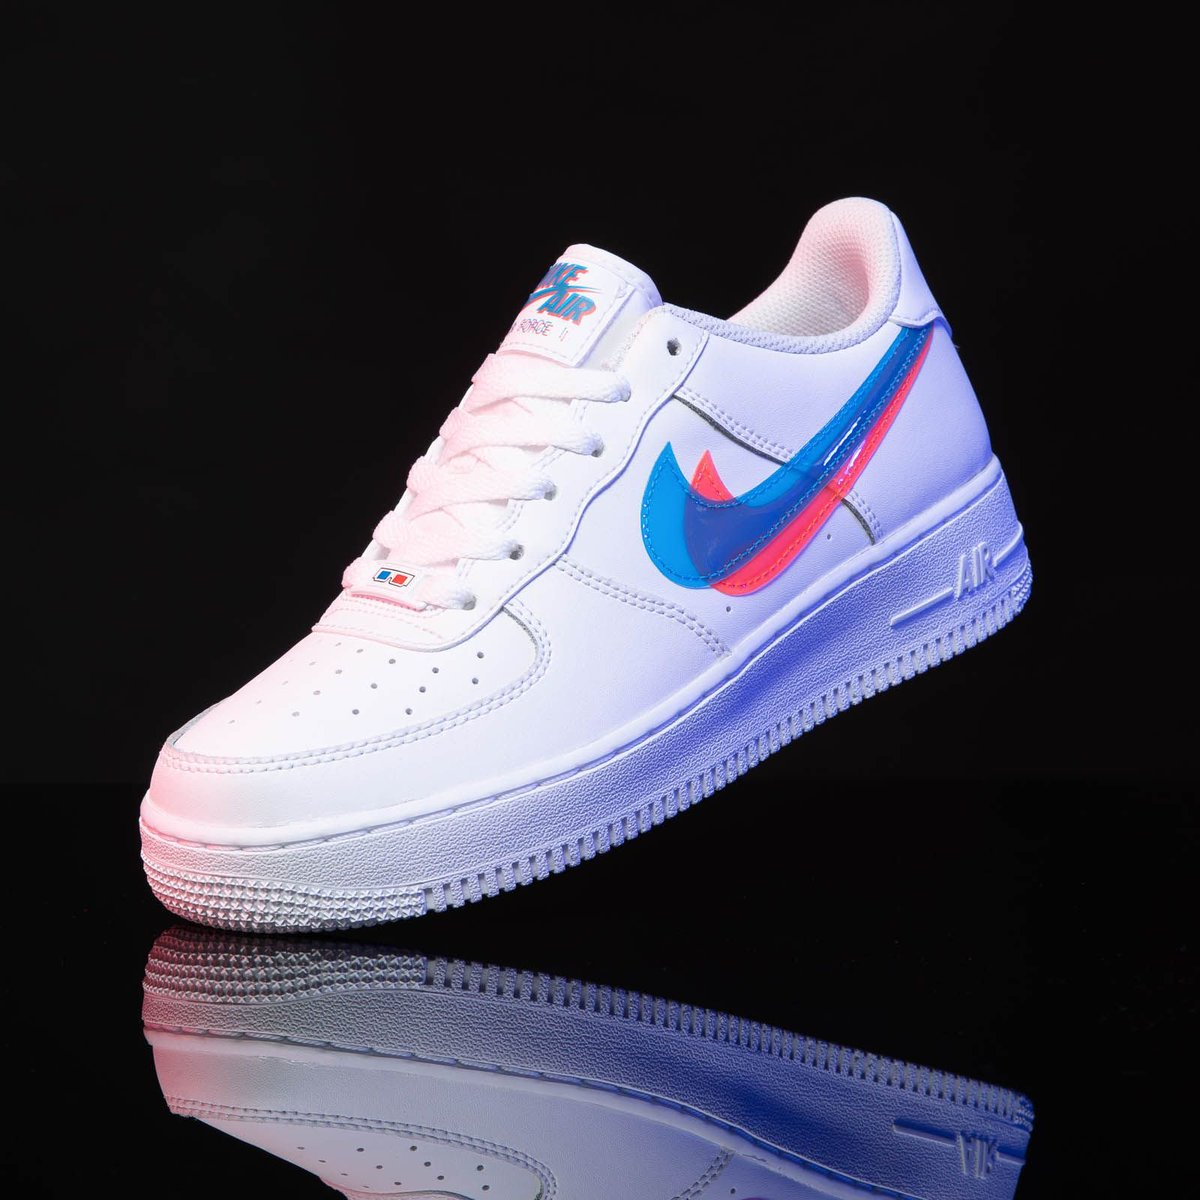 3d Air Force 1